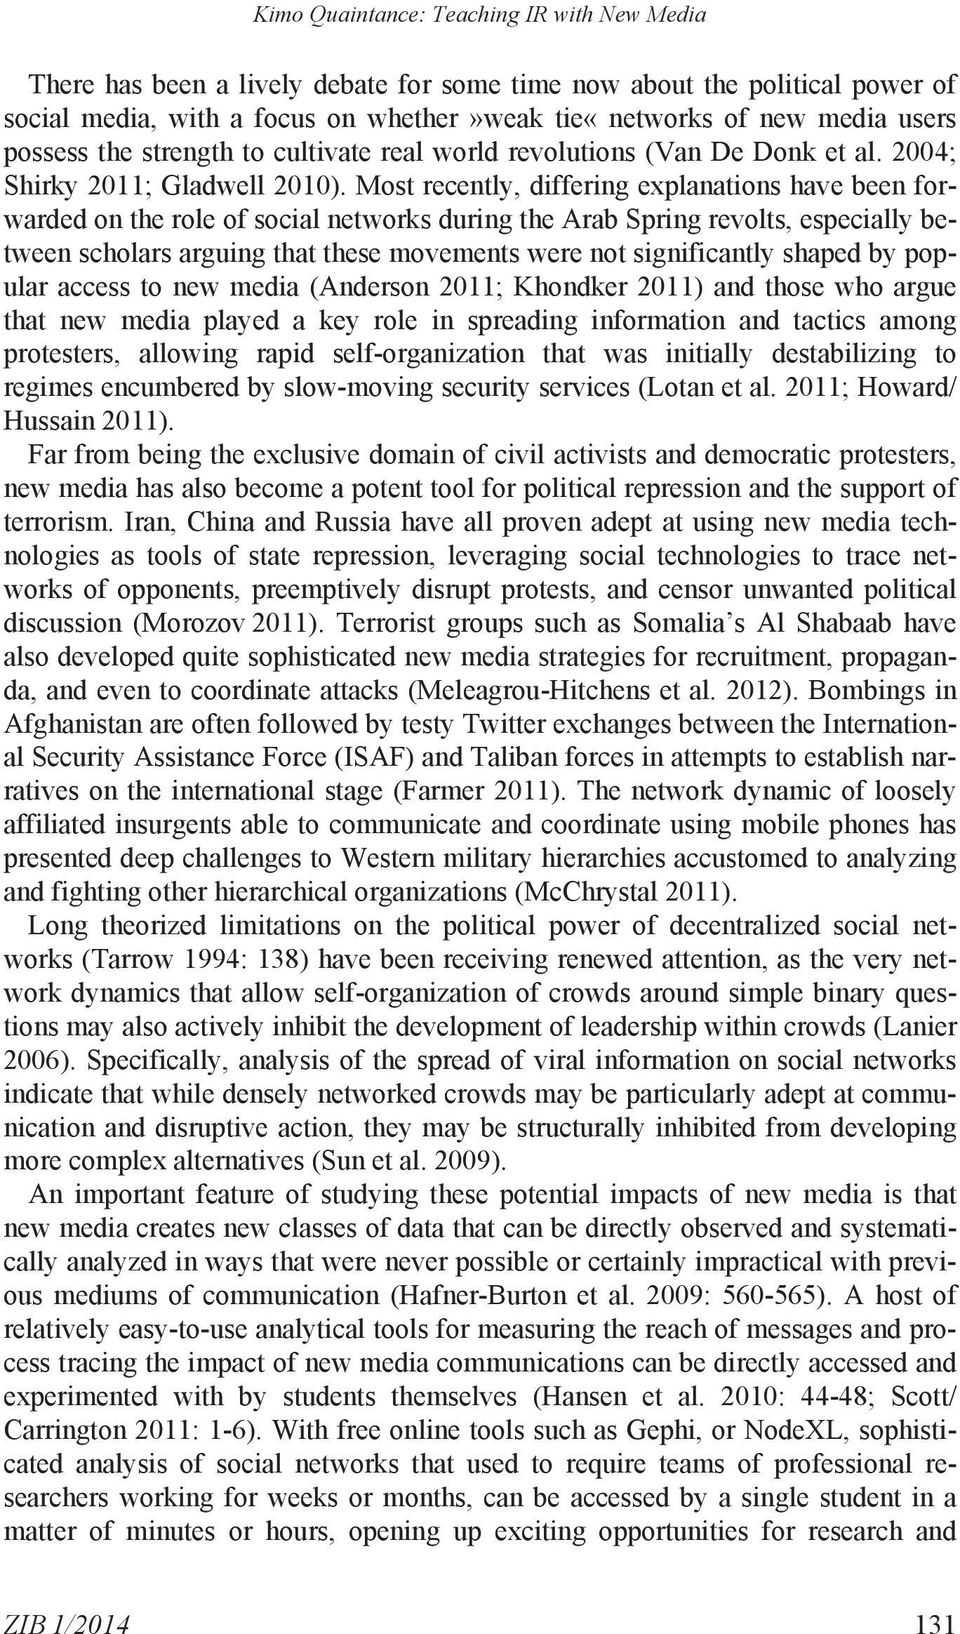 Most recently, differing explanations have been forwarded on the role of social networks during the Arab Spring revolts, especially between scholars arguing that these movements were not